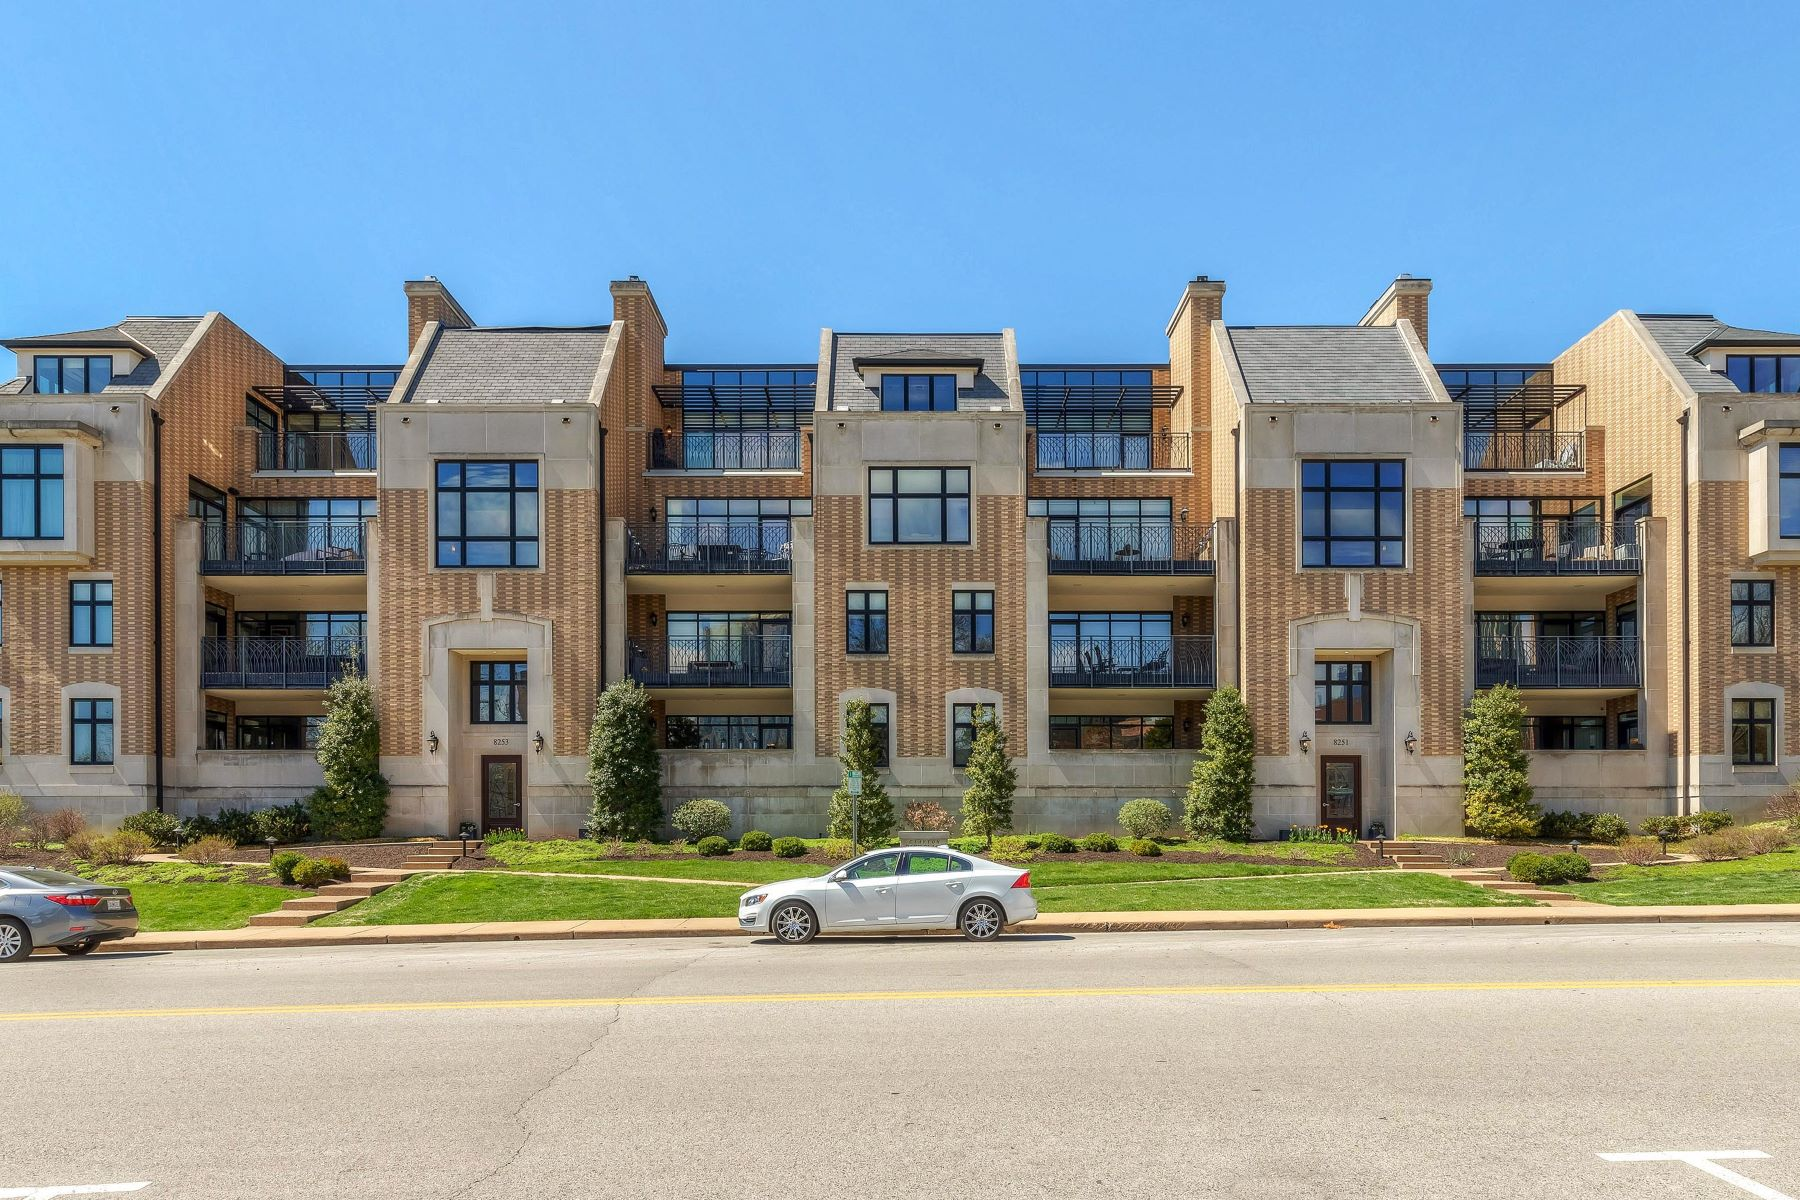 Property for Sale at Clayton Park Place Condo 8251 Parkside Drive Unit 1C Clayton, Missouri 63105 United States